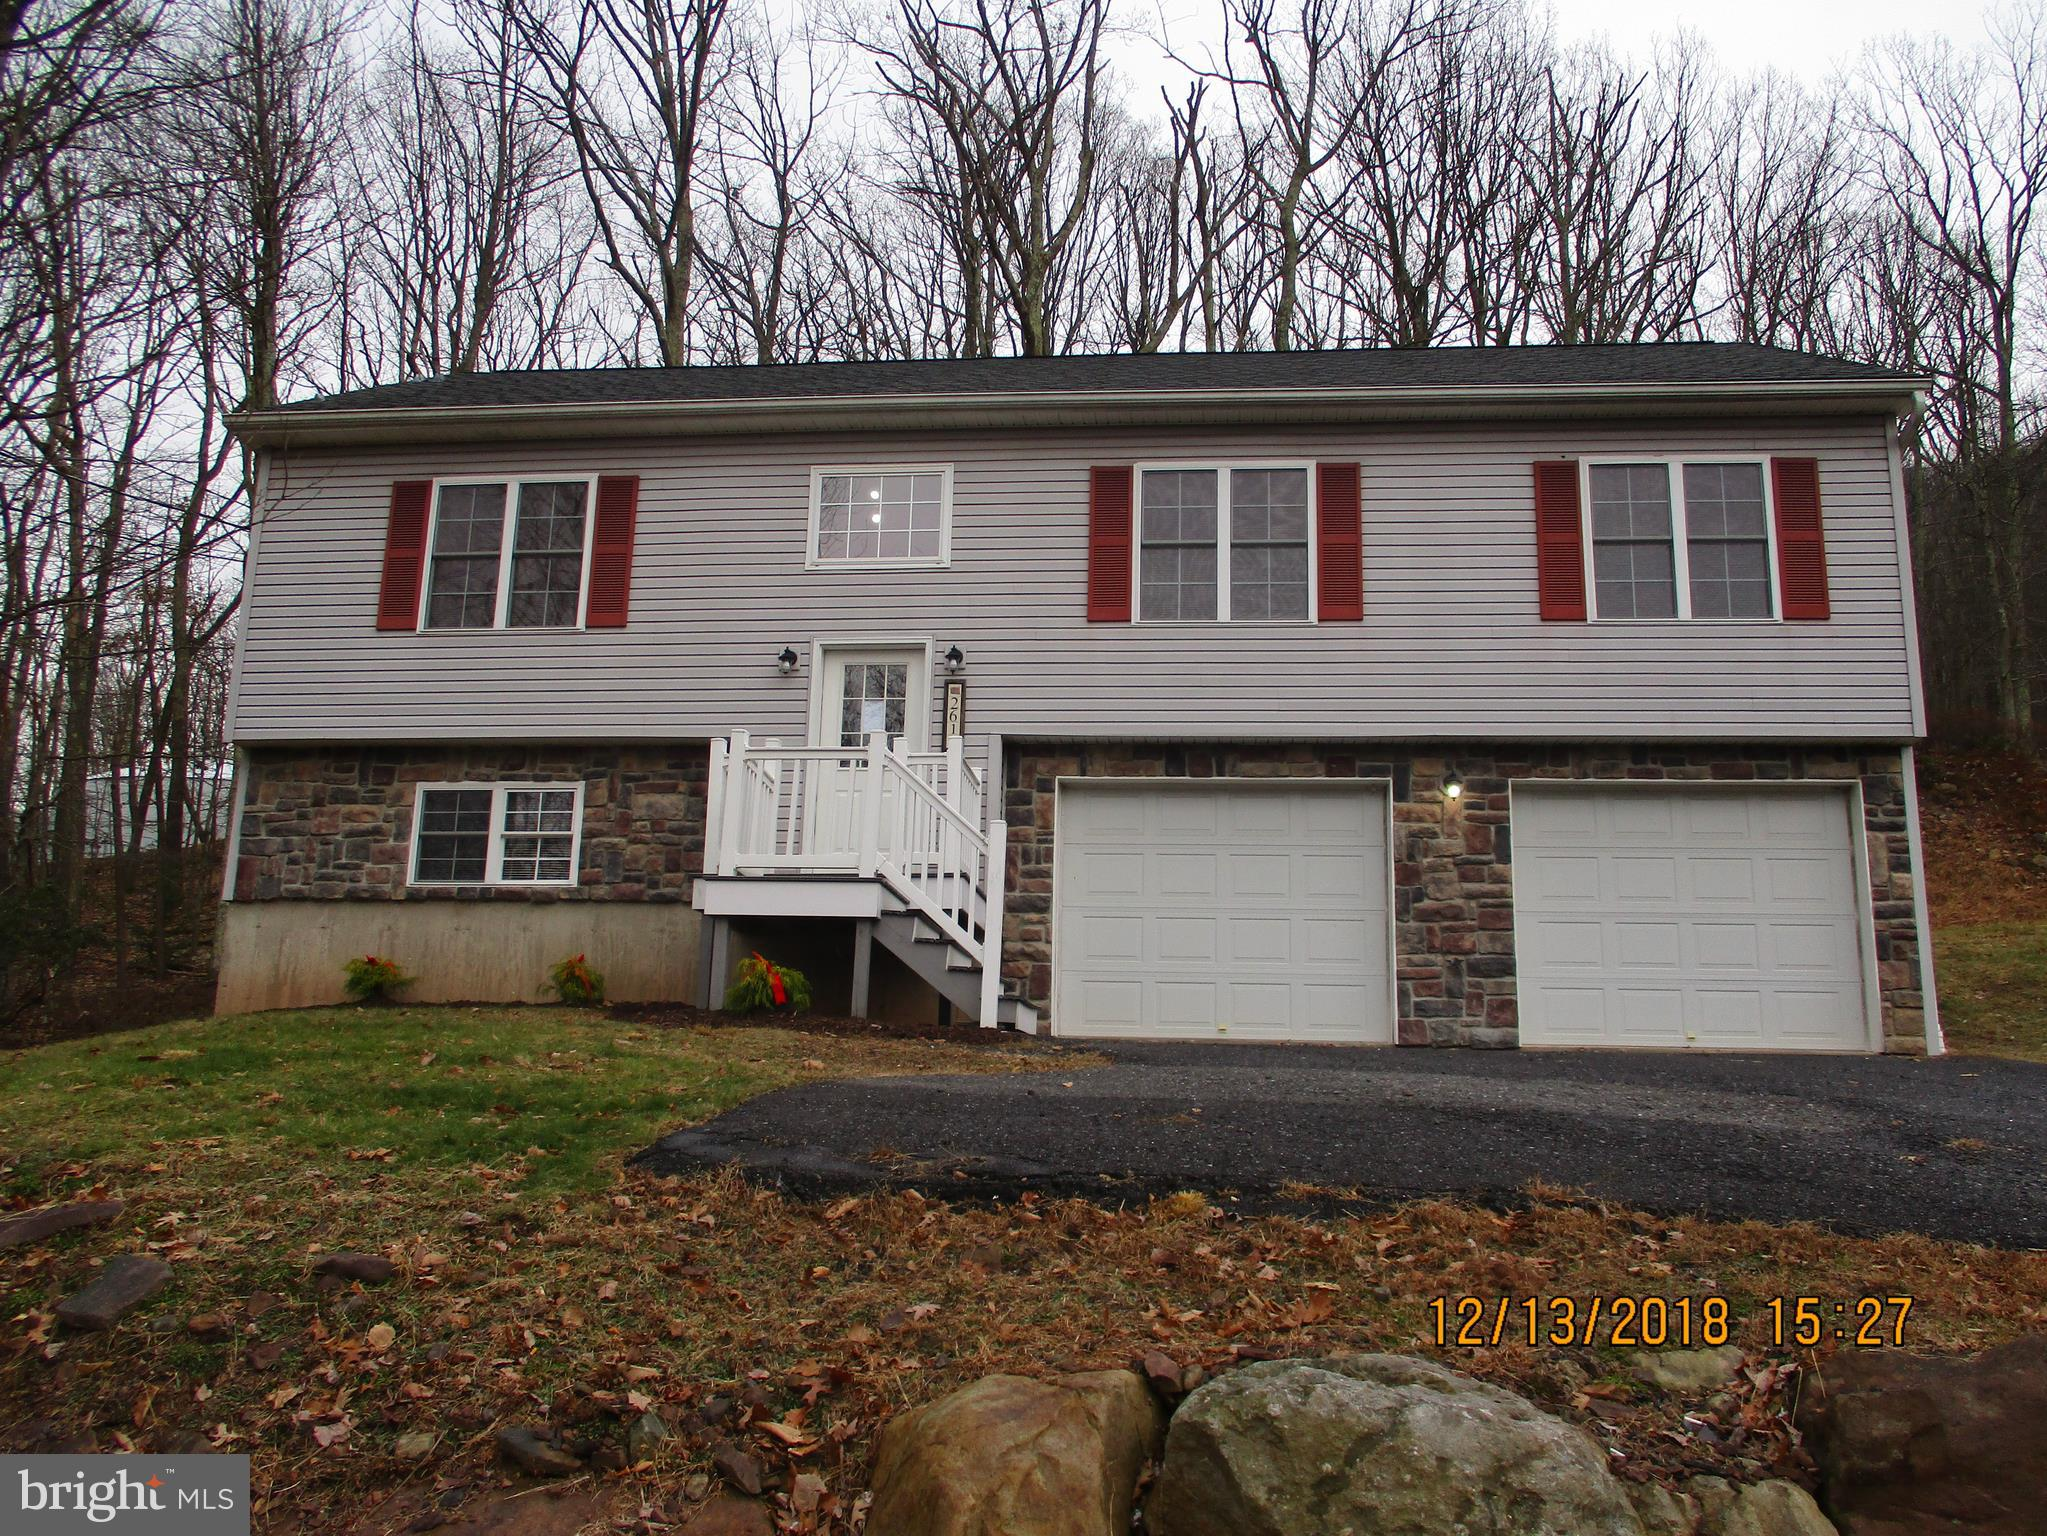 261 AVALANCHE LANE, DRUMS, PA 18222